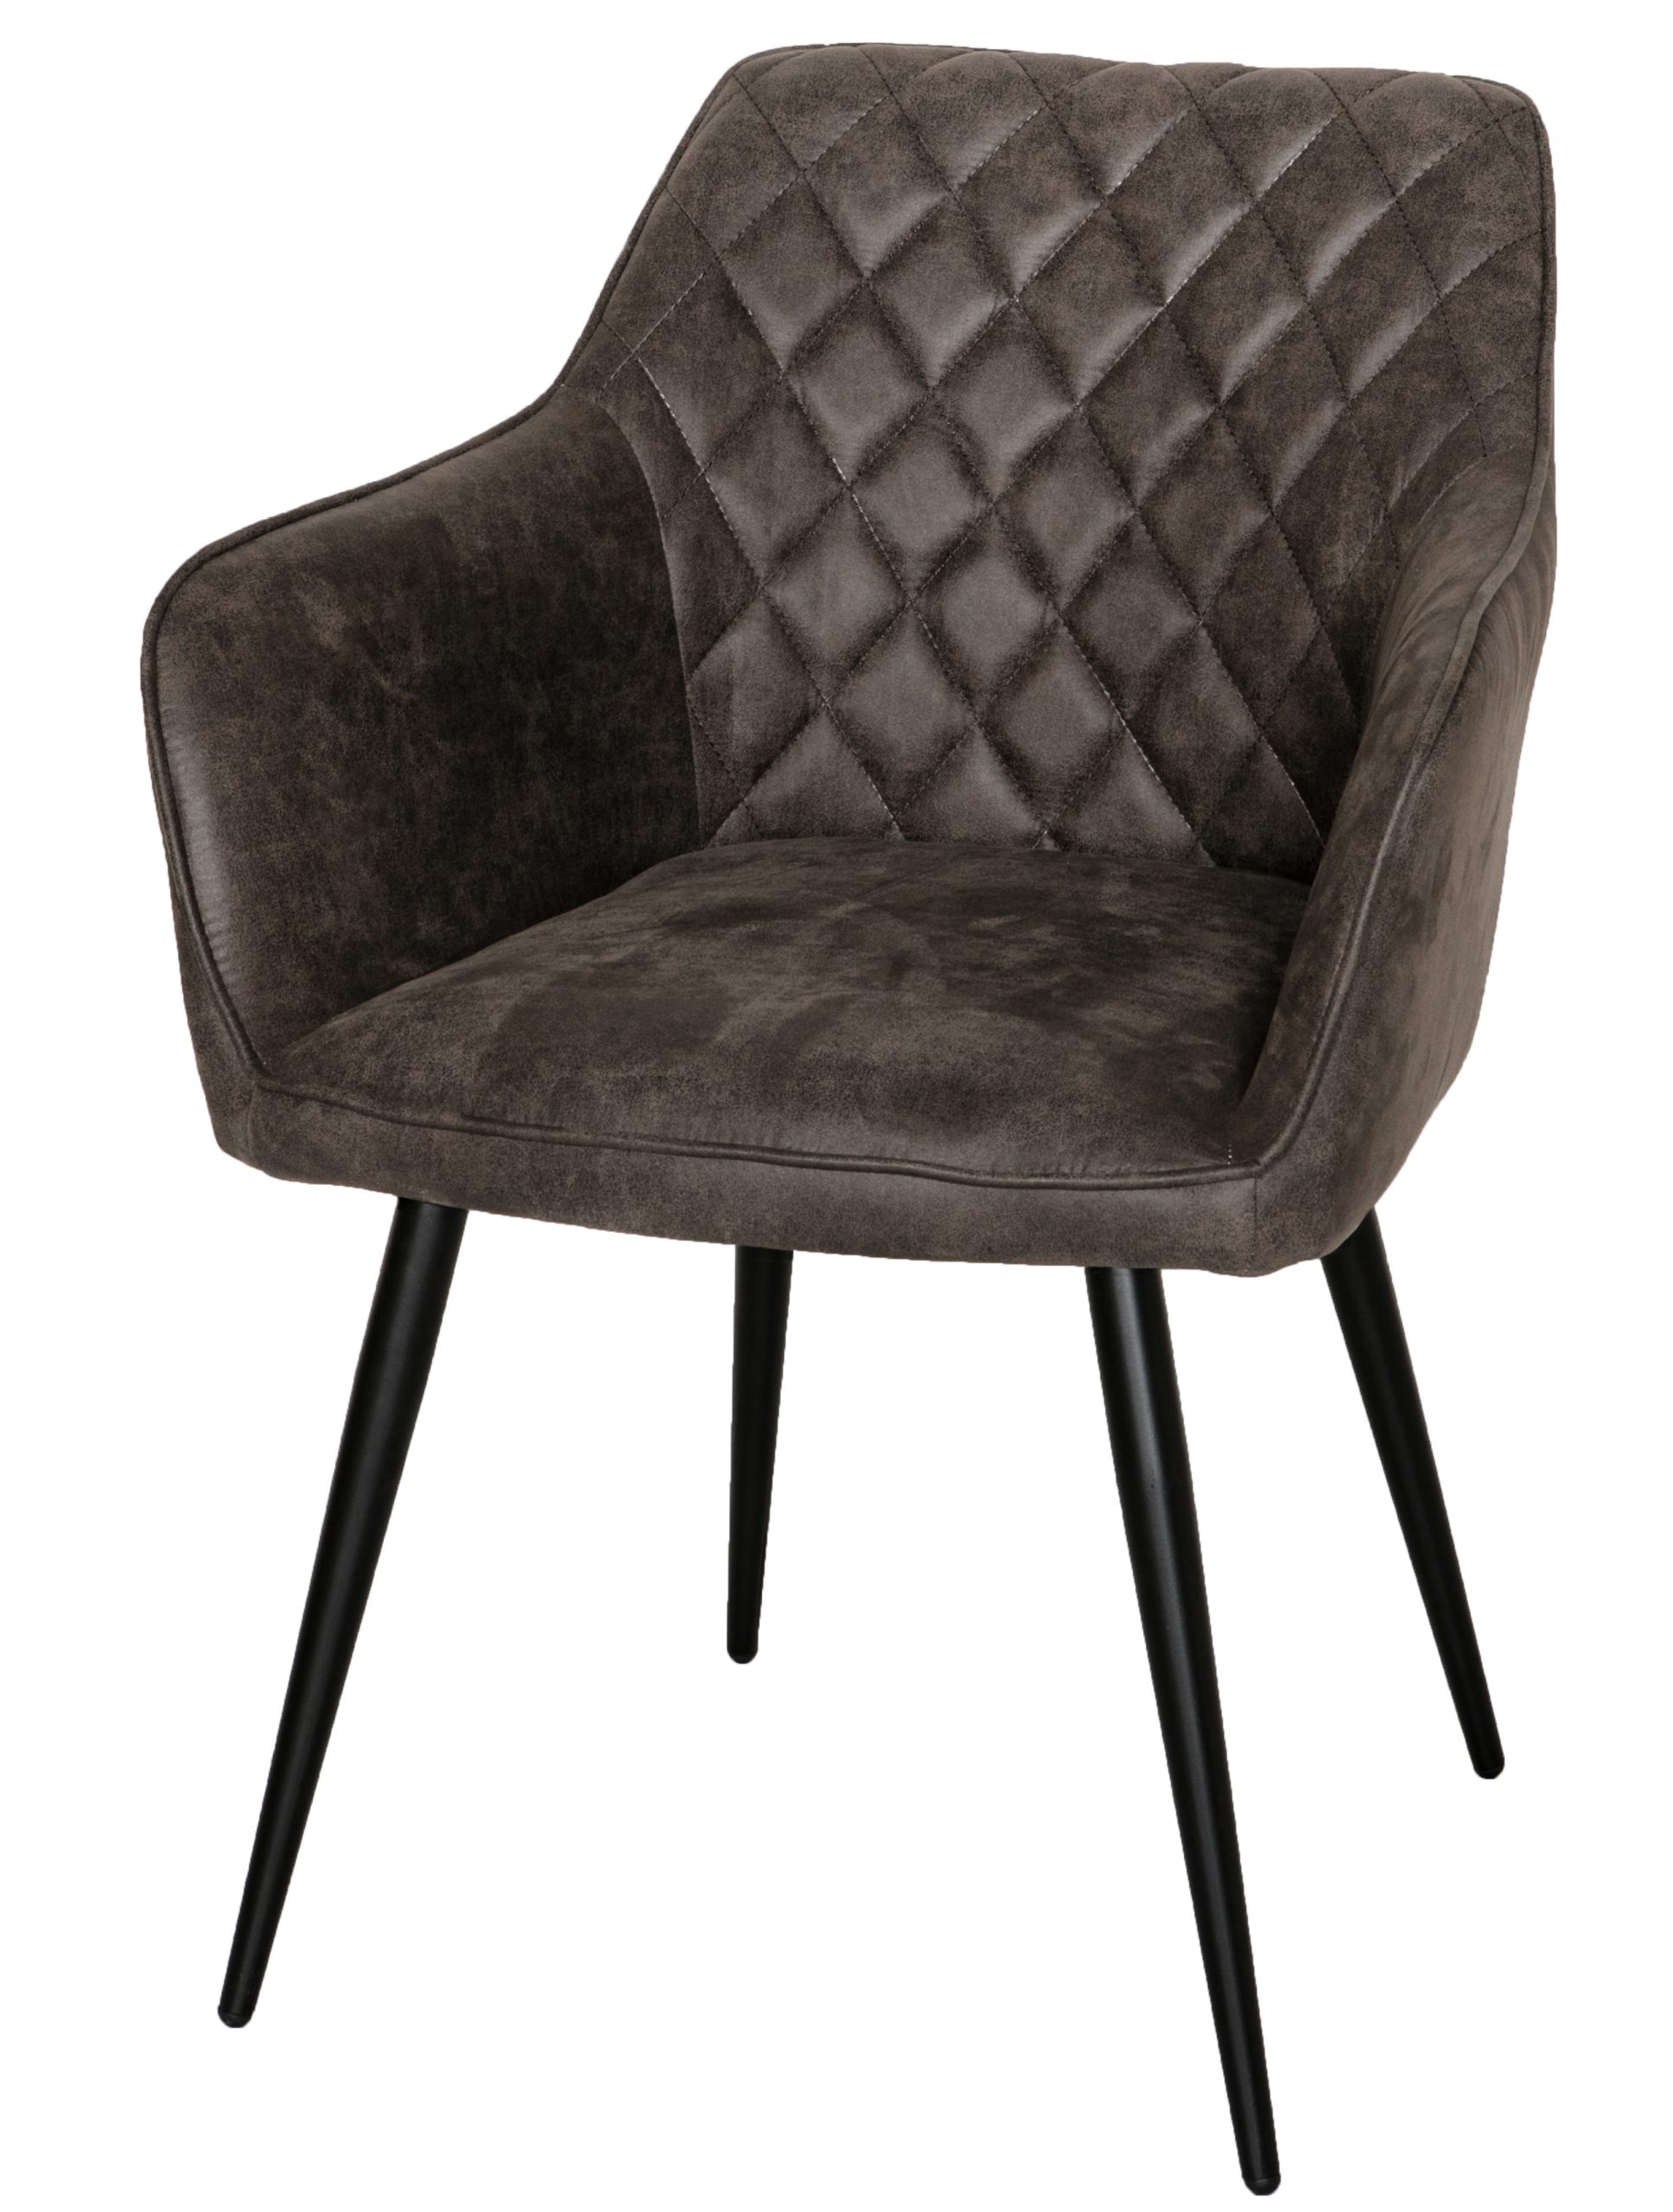 Harley vintage grey leather carver dining chair